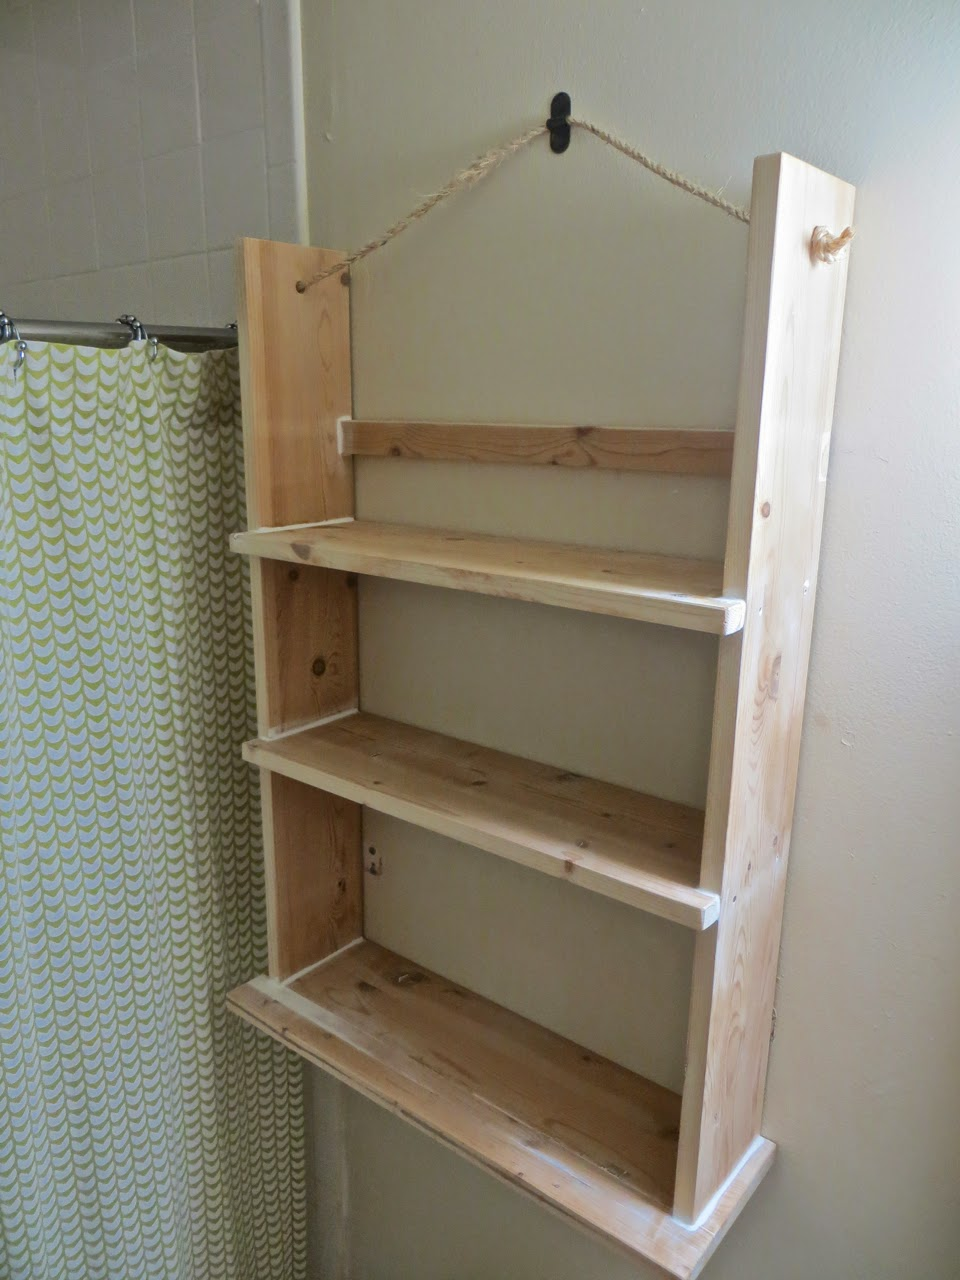 The Project Lady: Tutorial For Making A Wood Bathroom Shelf